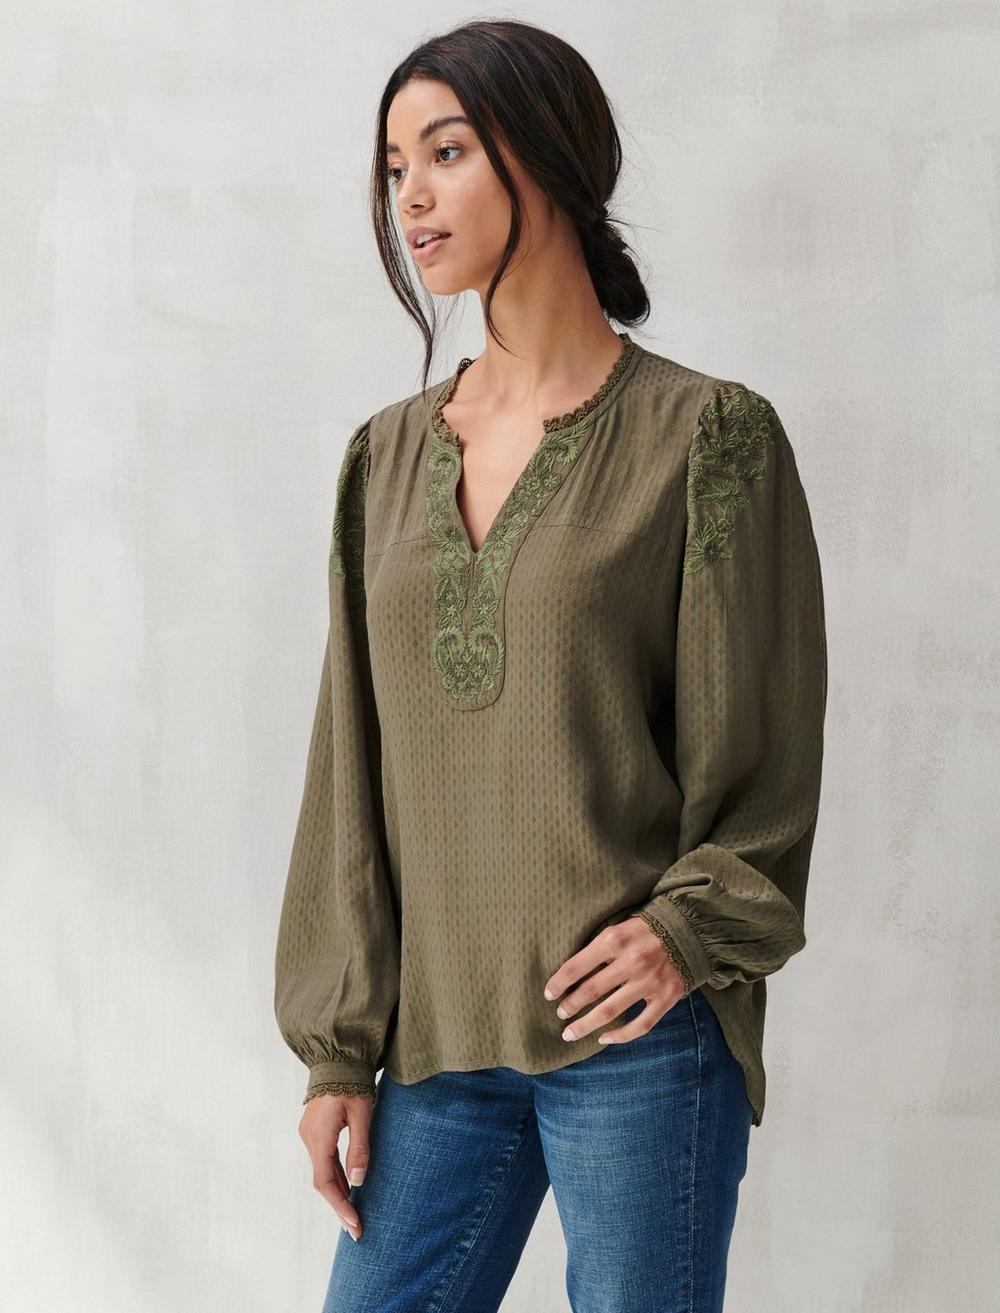 TEXTURED EMBROIDERED PEASANT TOP, image 3